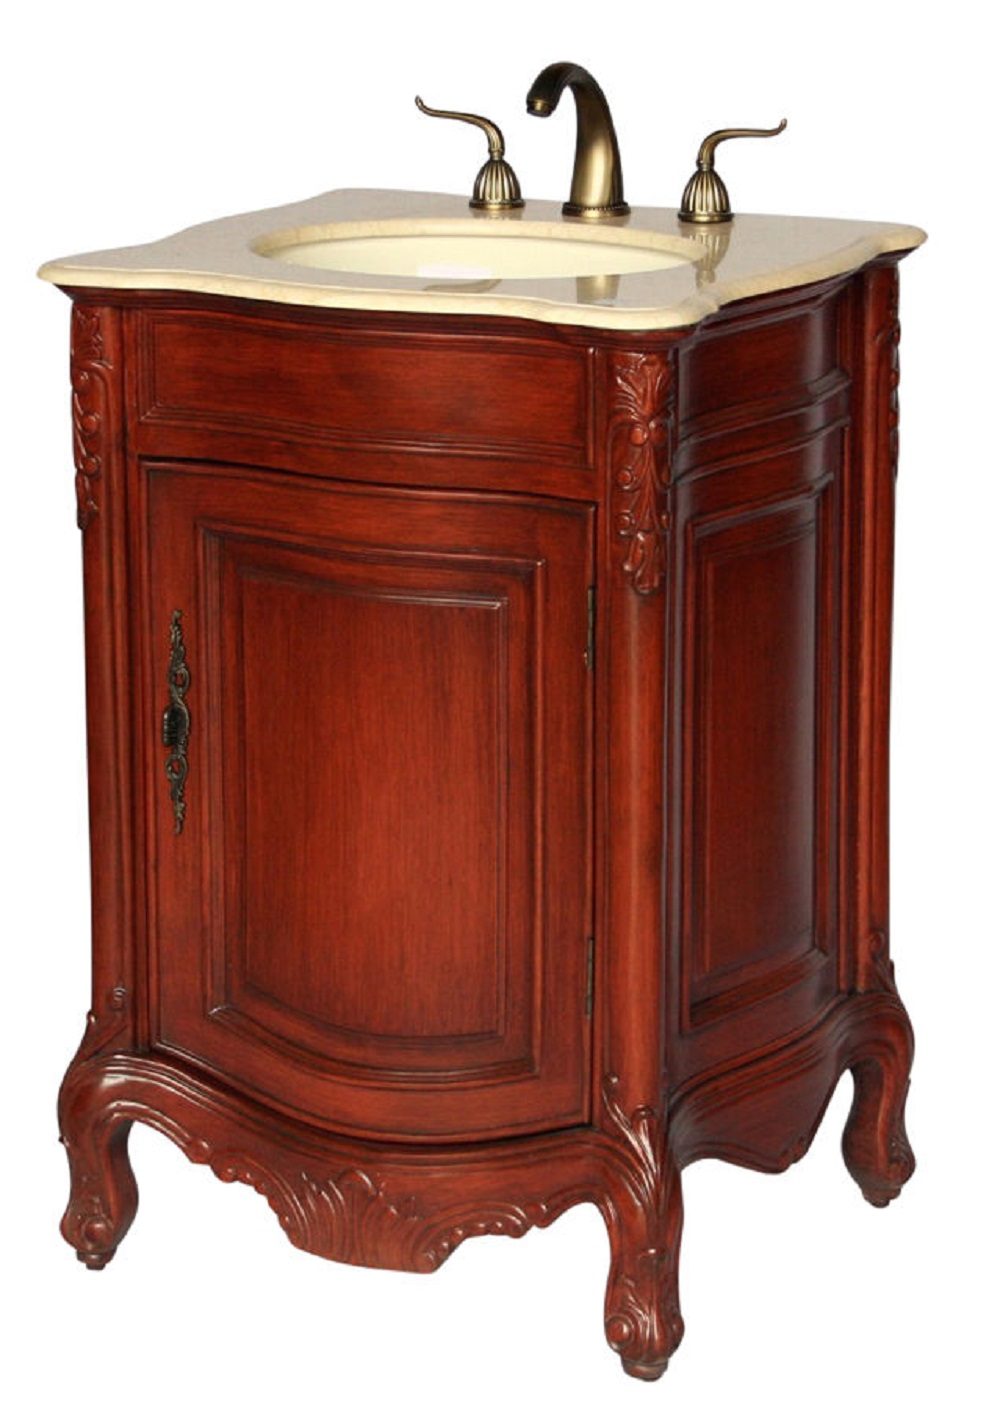 24 Inch Bathroom Vanity Traditional Antique Style Cherry Color 24 Wx21 Dx36 H S2232505be